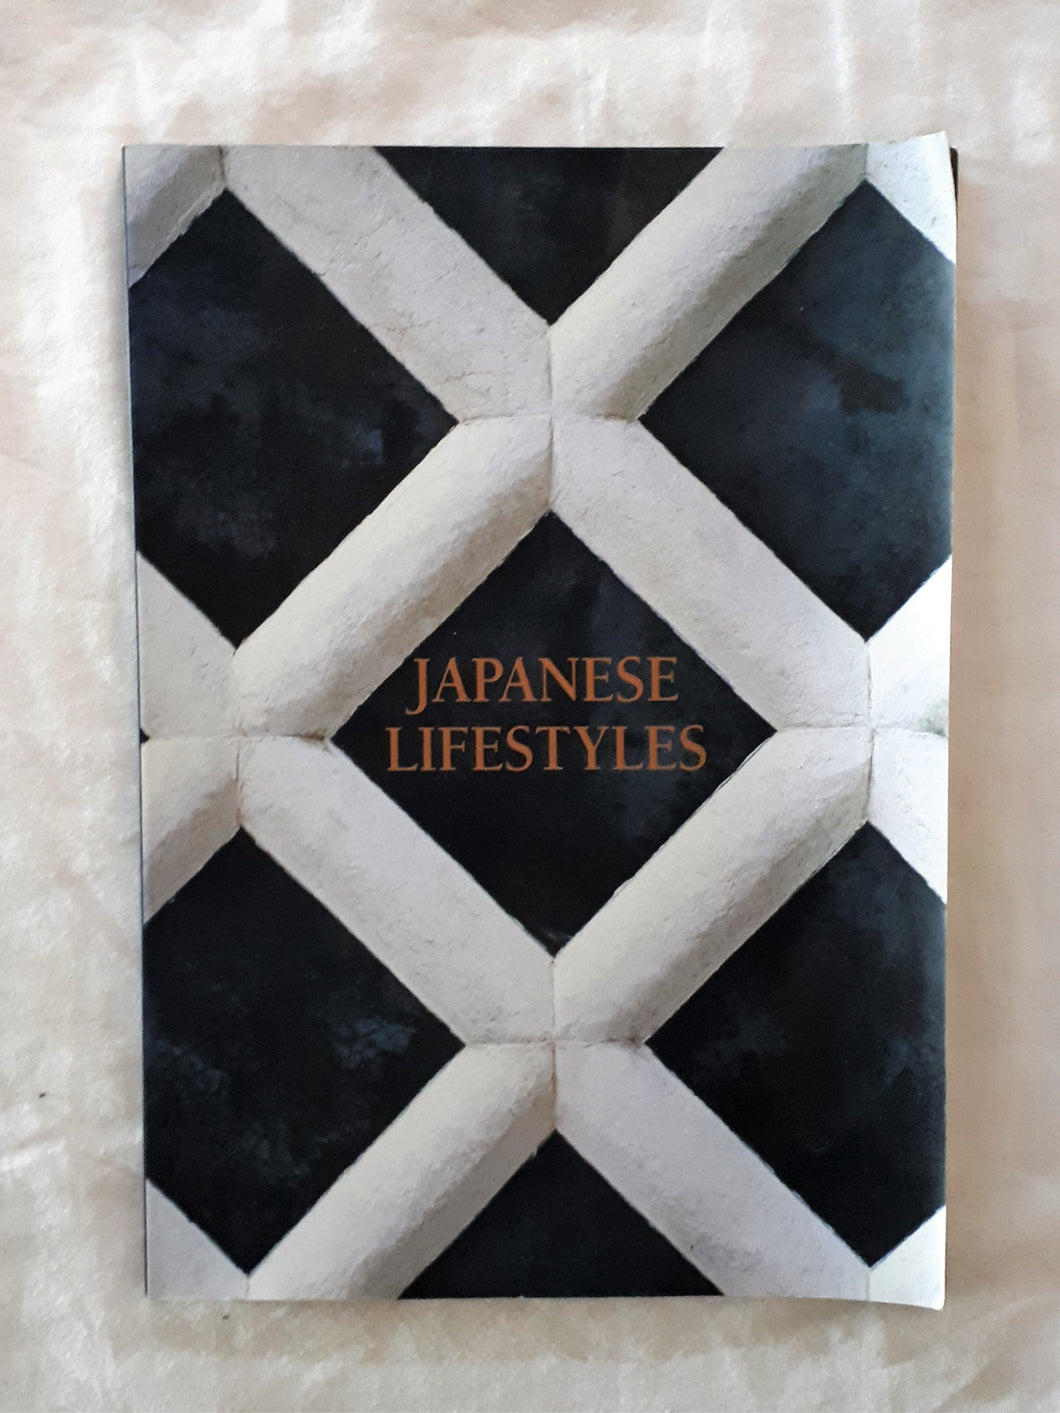 Japanese Lifestyles by Japan External Trade Organization